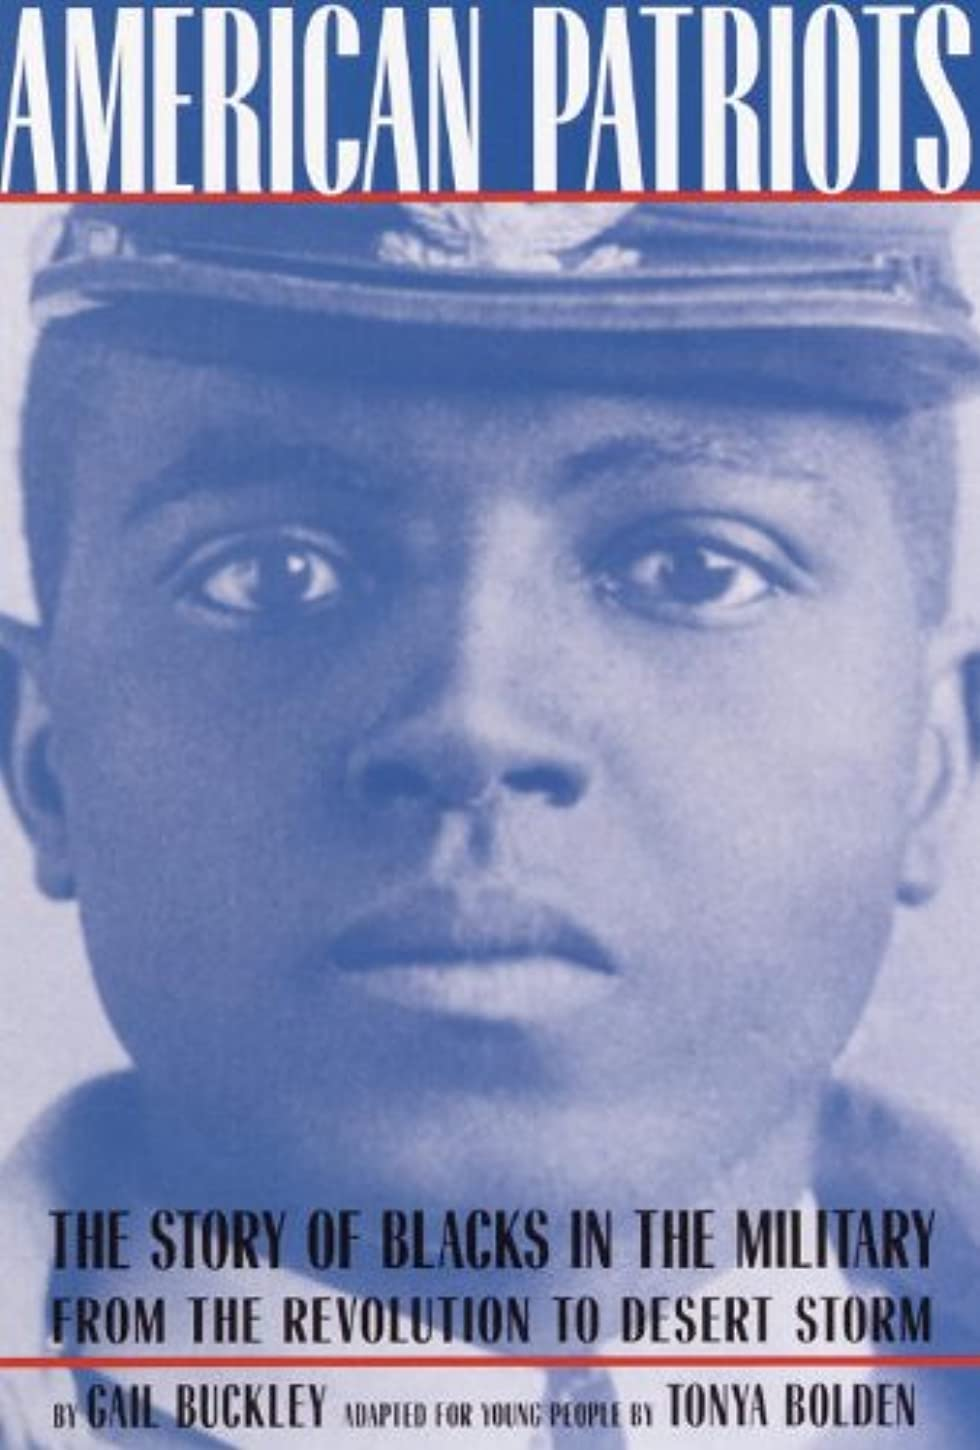 American Patriots: A Young People's Edition: The Story of Blacks in the Military from the Revolution to Desert Storm (American History Classics) (English Edition)